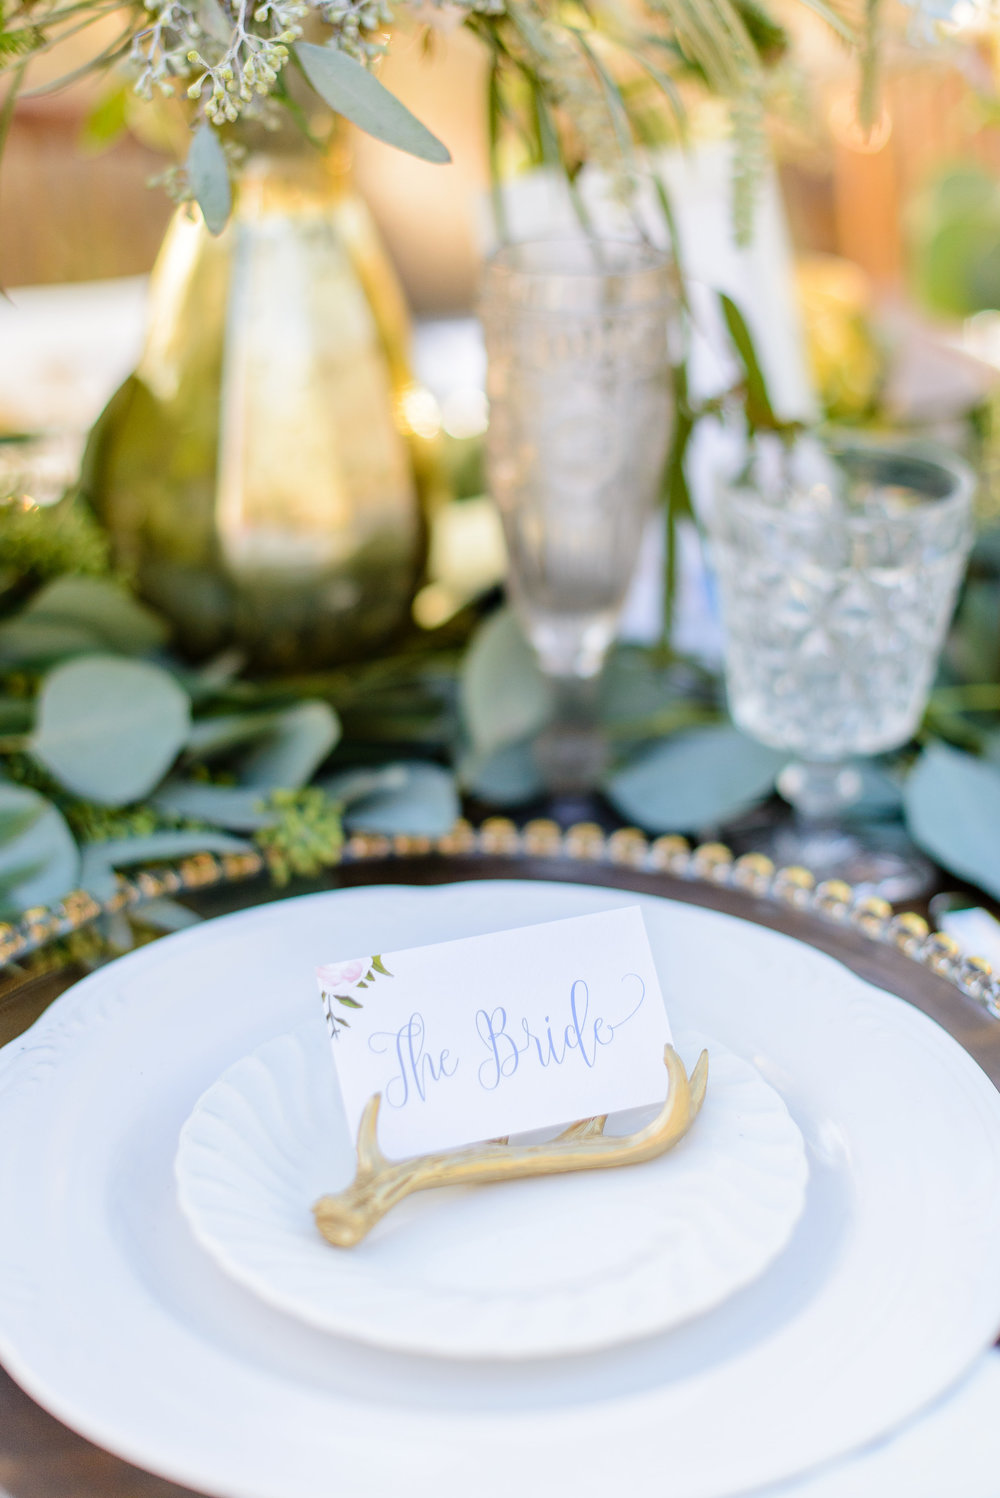 Boho Wedding - Bride Placecards with Antler Details from WeddingStar Magazine - Designed by Grace and Serendipity